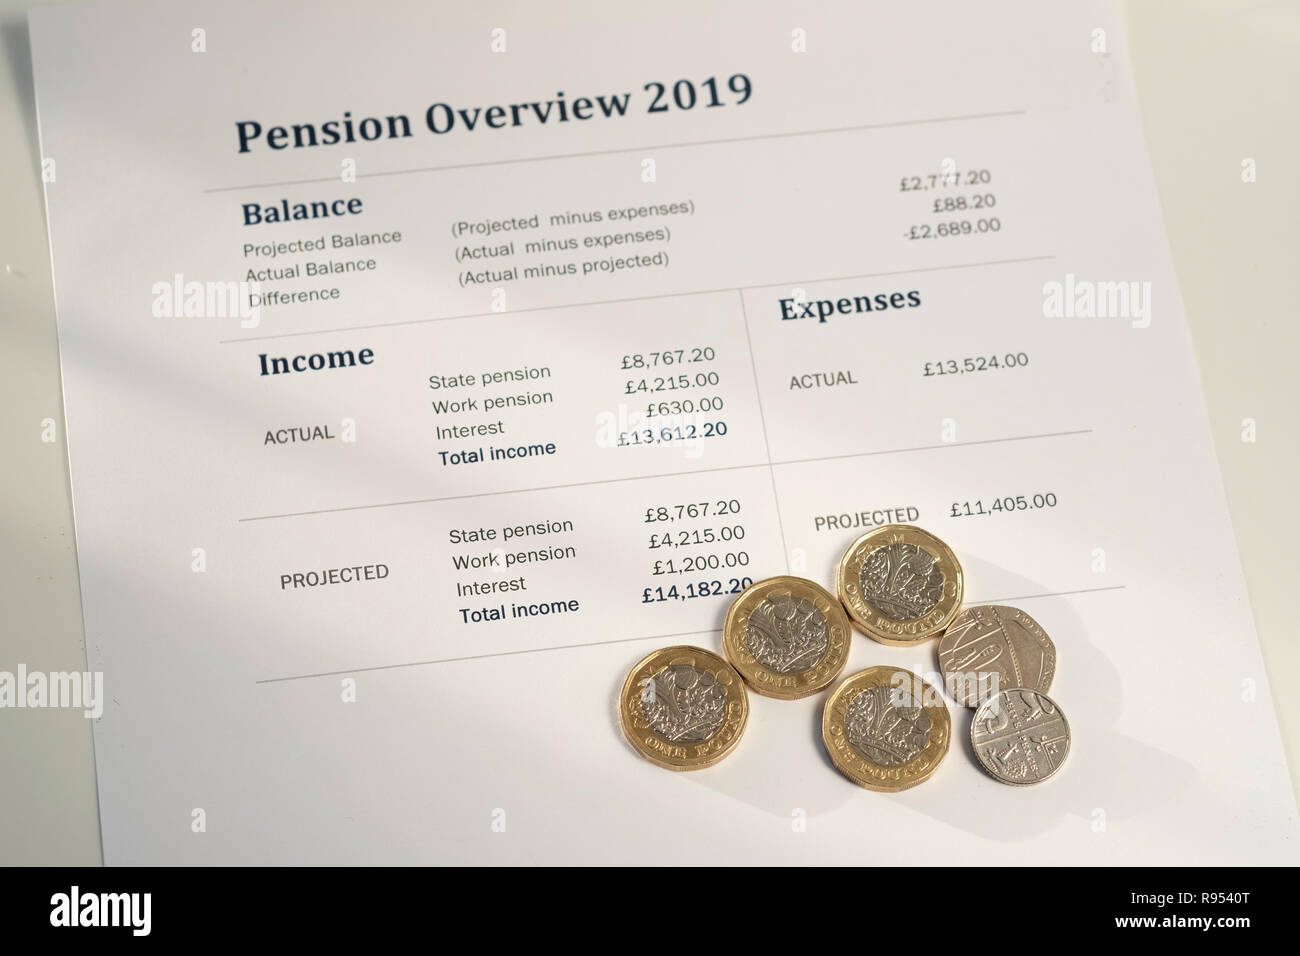 UK state pension increase of 4.25 per week from April 2019 Stock Photo